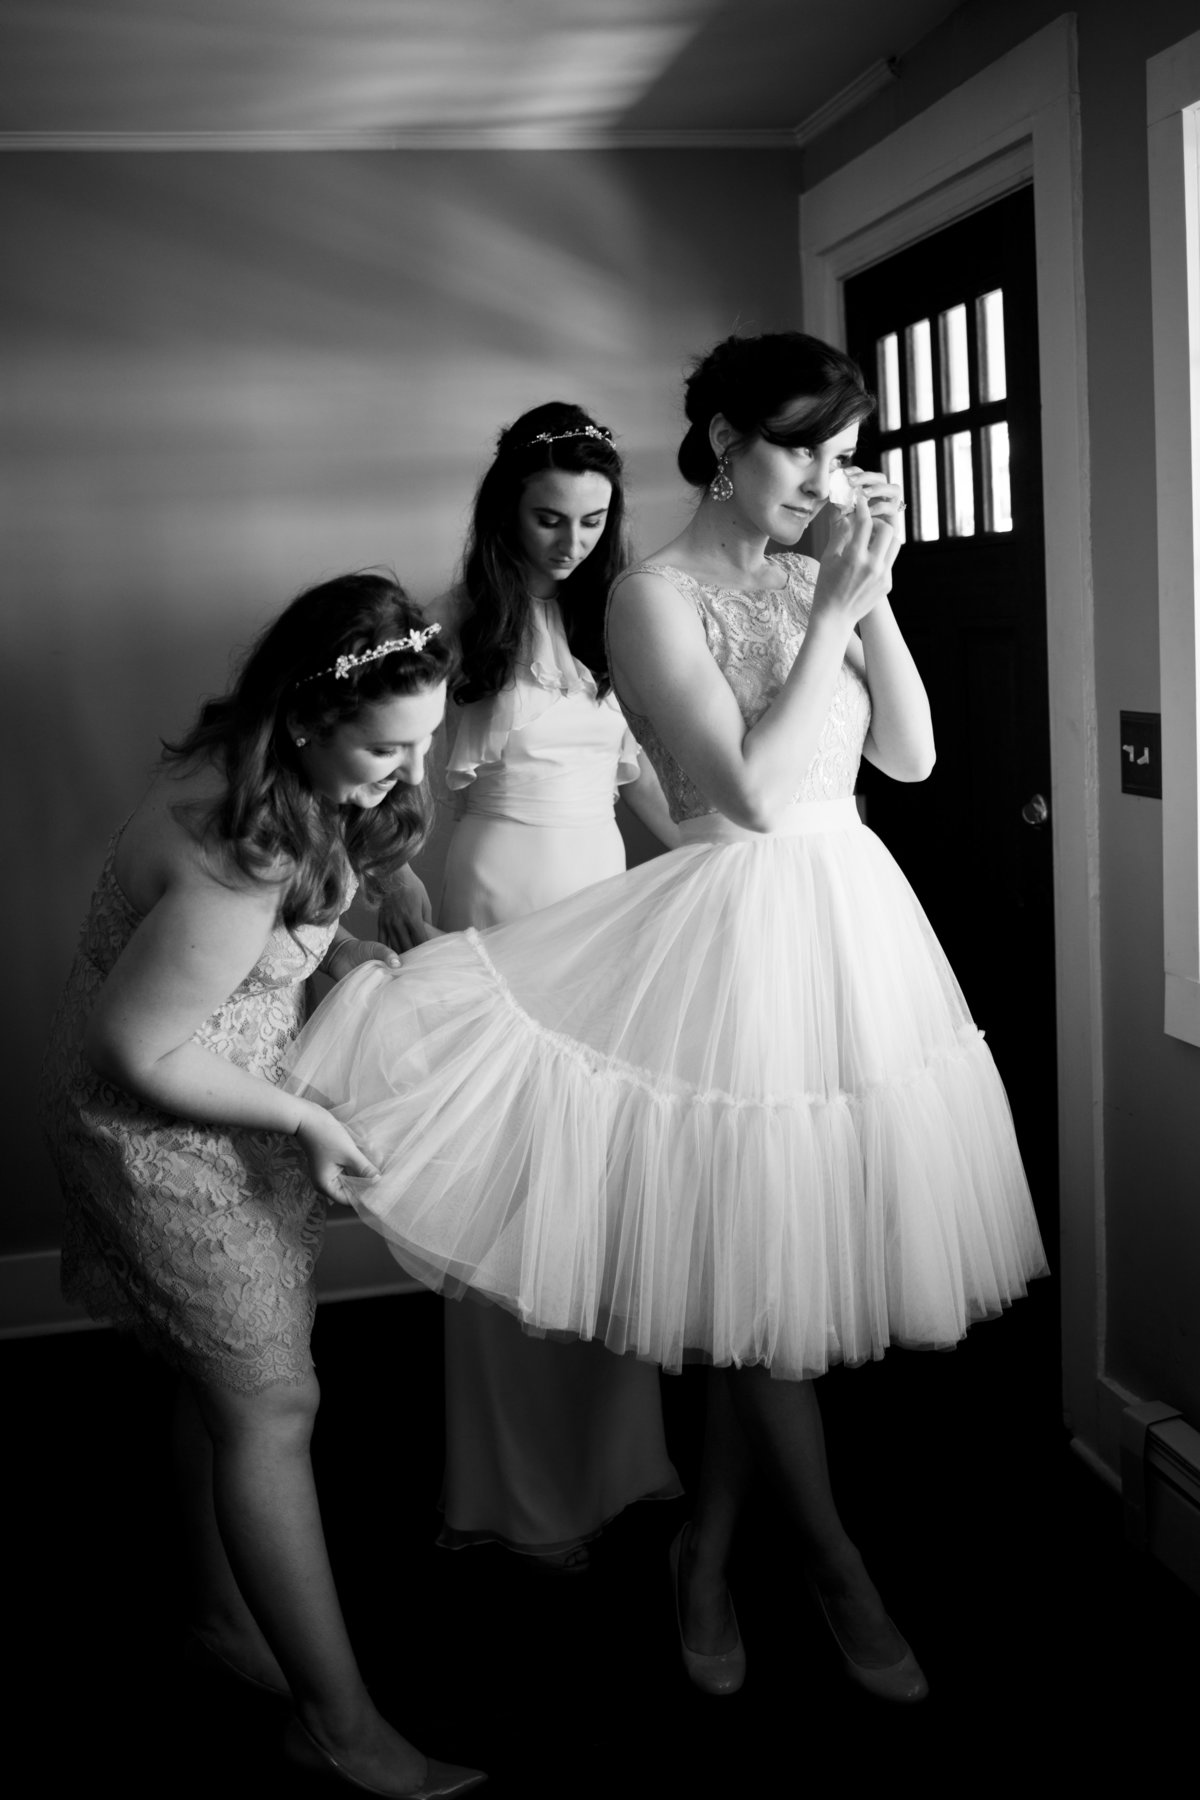 Black and White of Bride Getting Ready with Bridesmaids